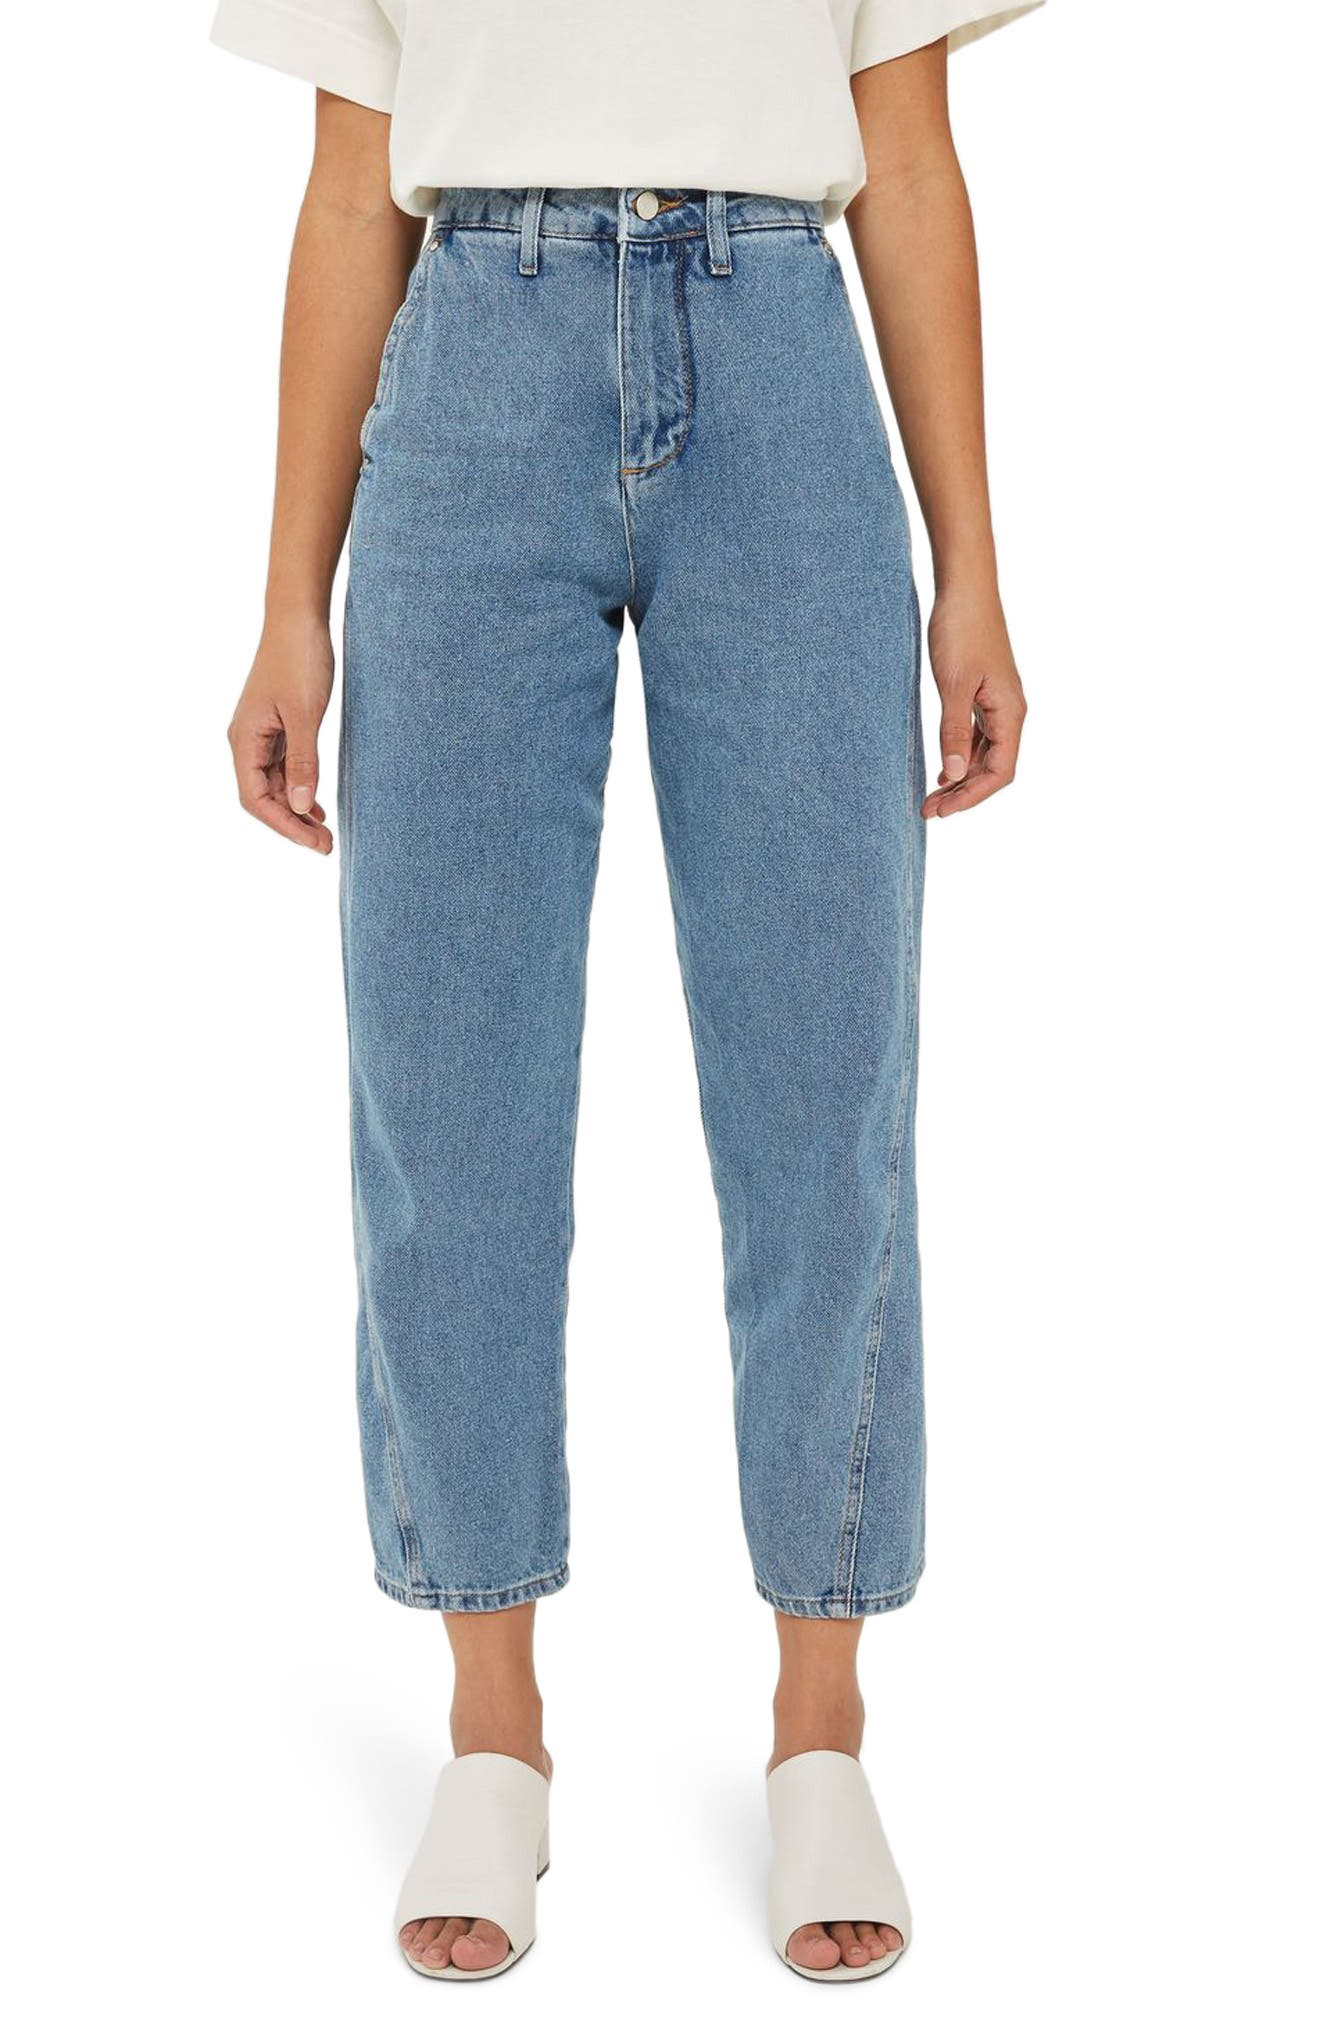 Topshop Boutique Displaced Seam Boyfriend Jeans